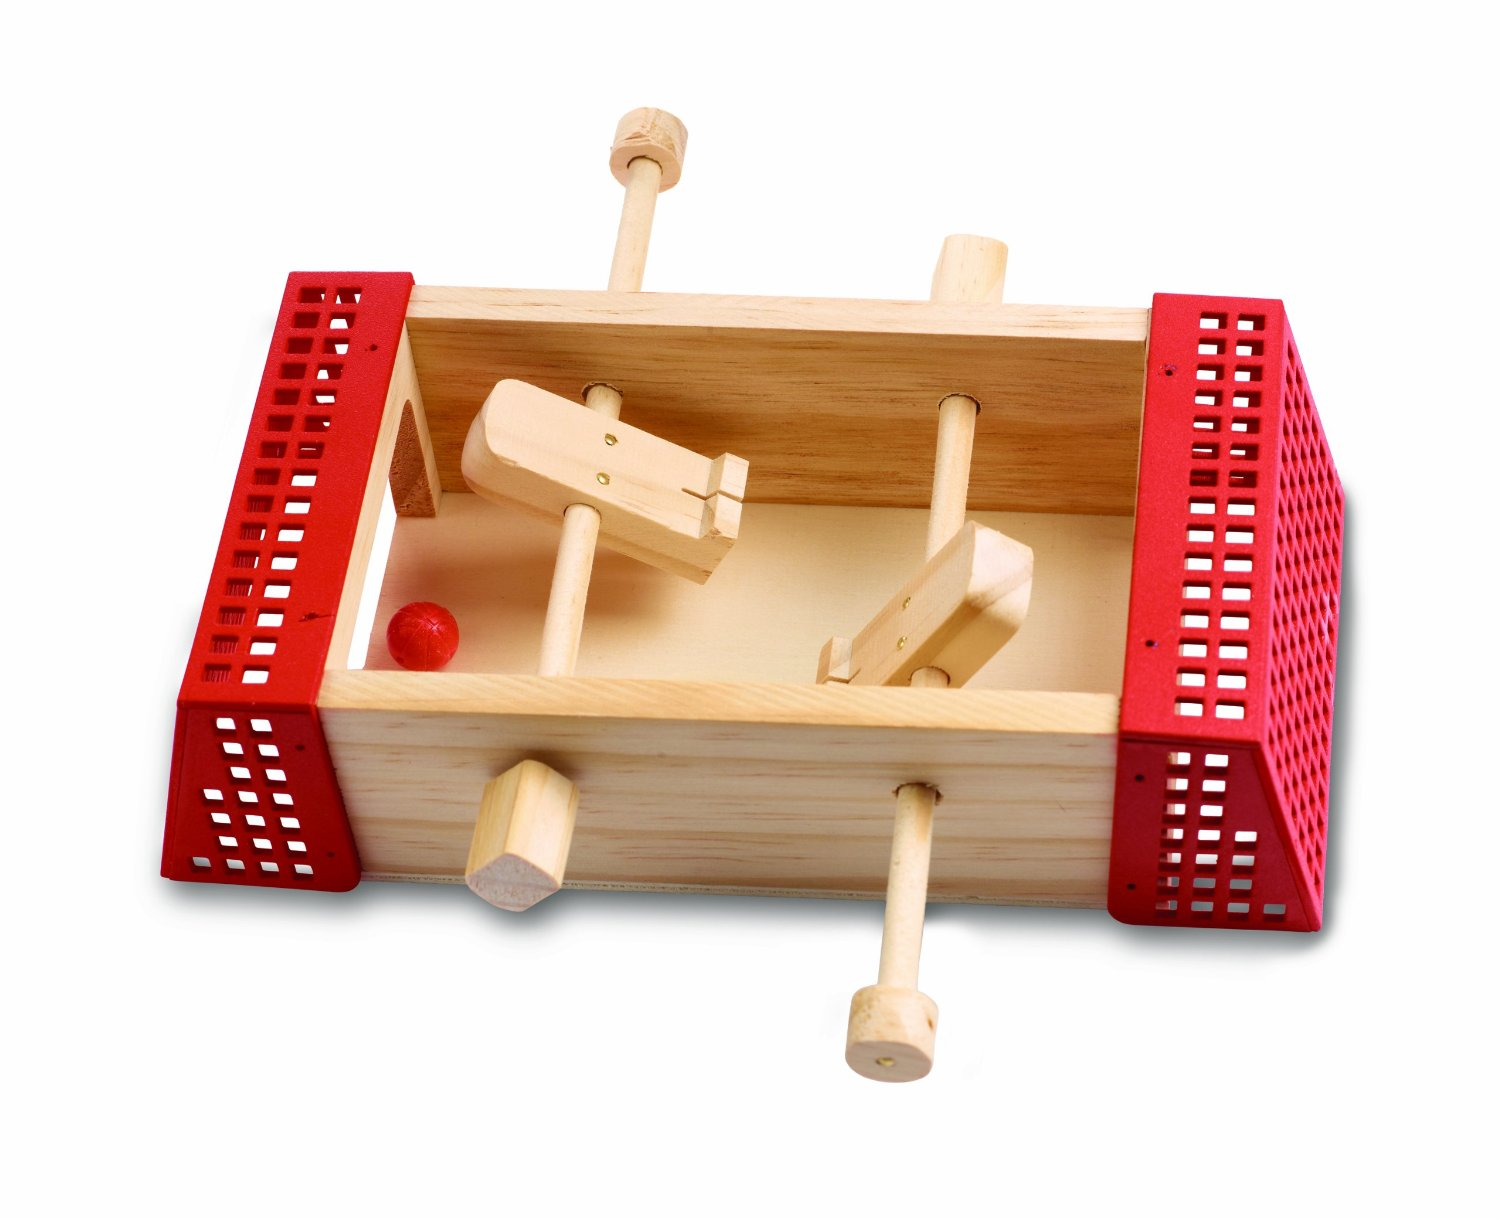 Red Tool Box Mini Soccer